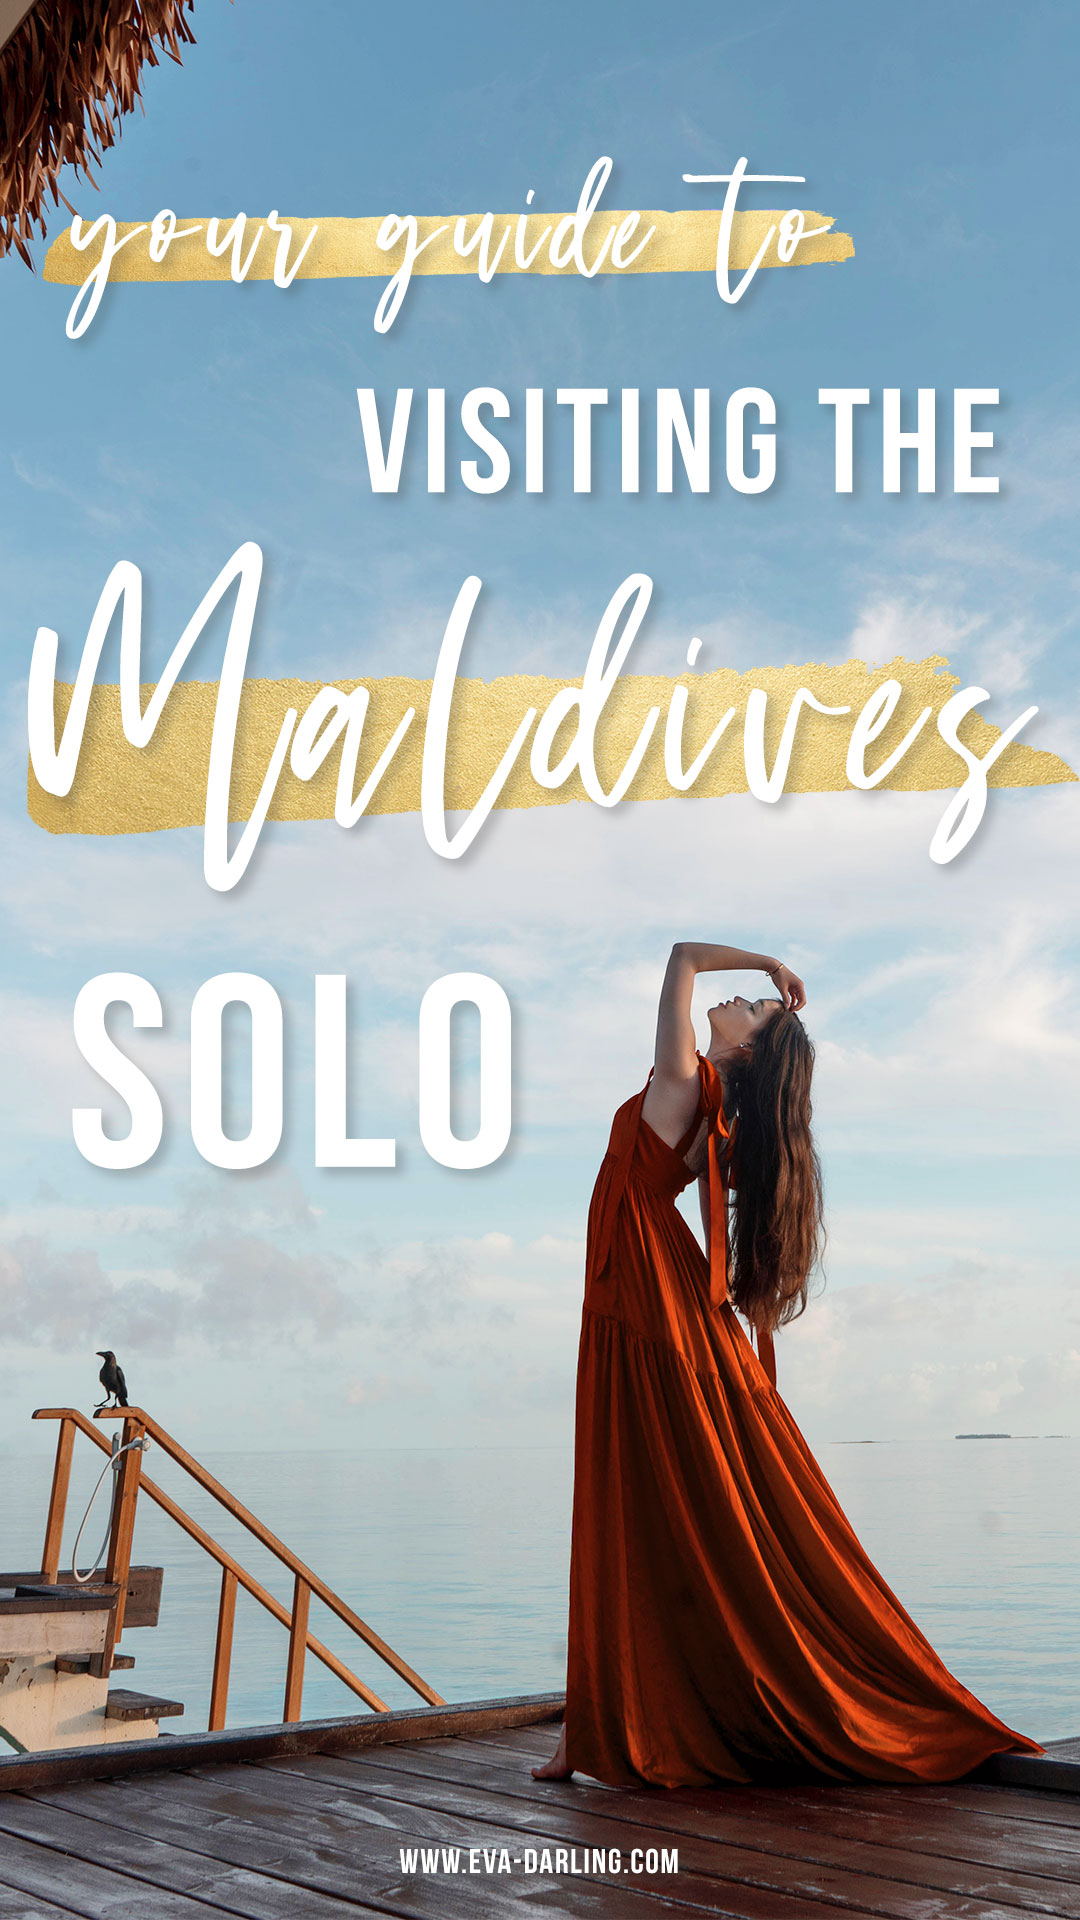 what to know before visiting the maldives solo perrin and co anne dress orange silk maxi dress train indian ocean maldives water brunette long brown hair woman bending backward overwater villa luxury resort